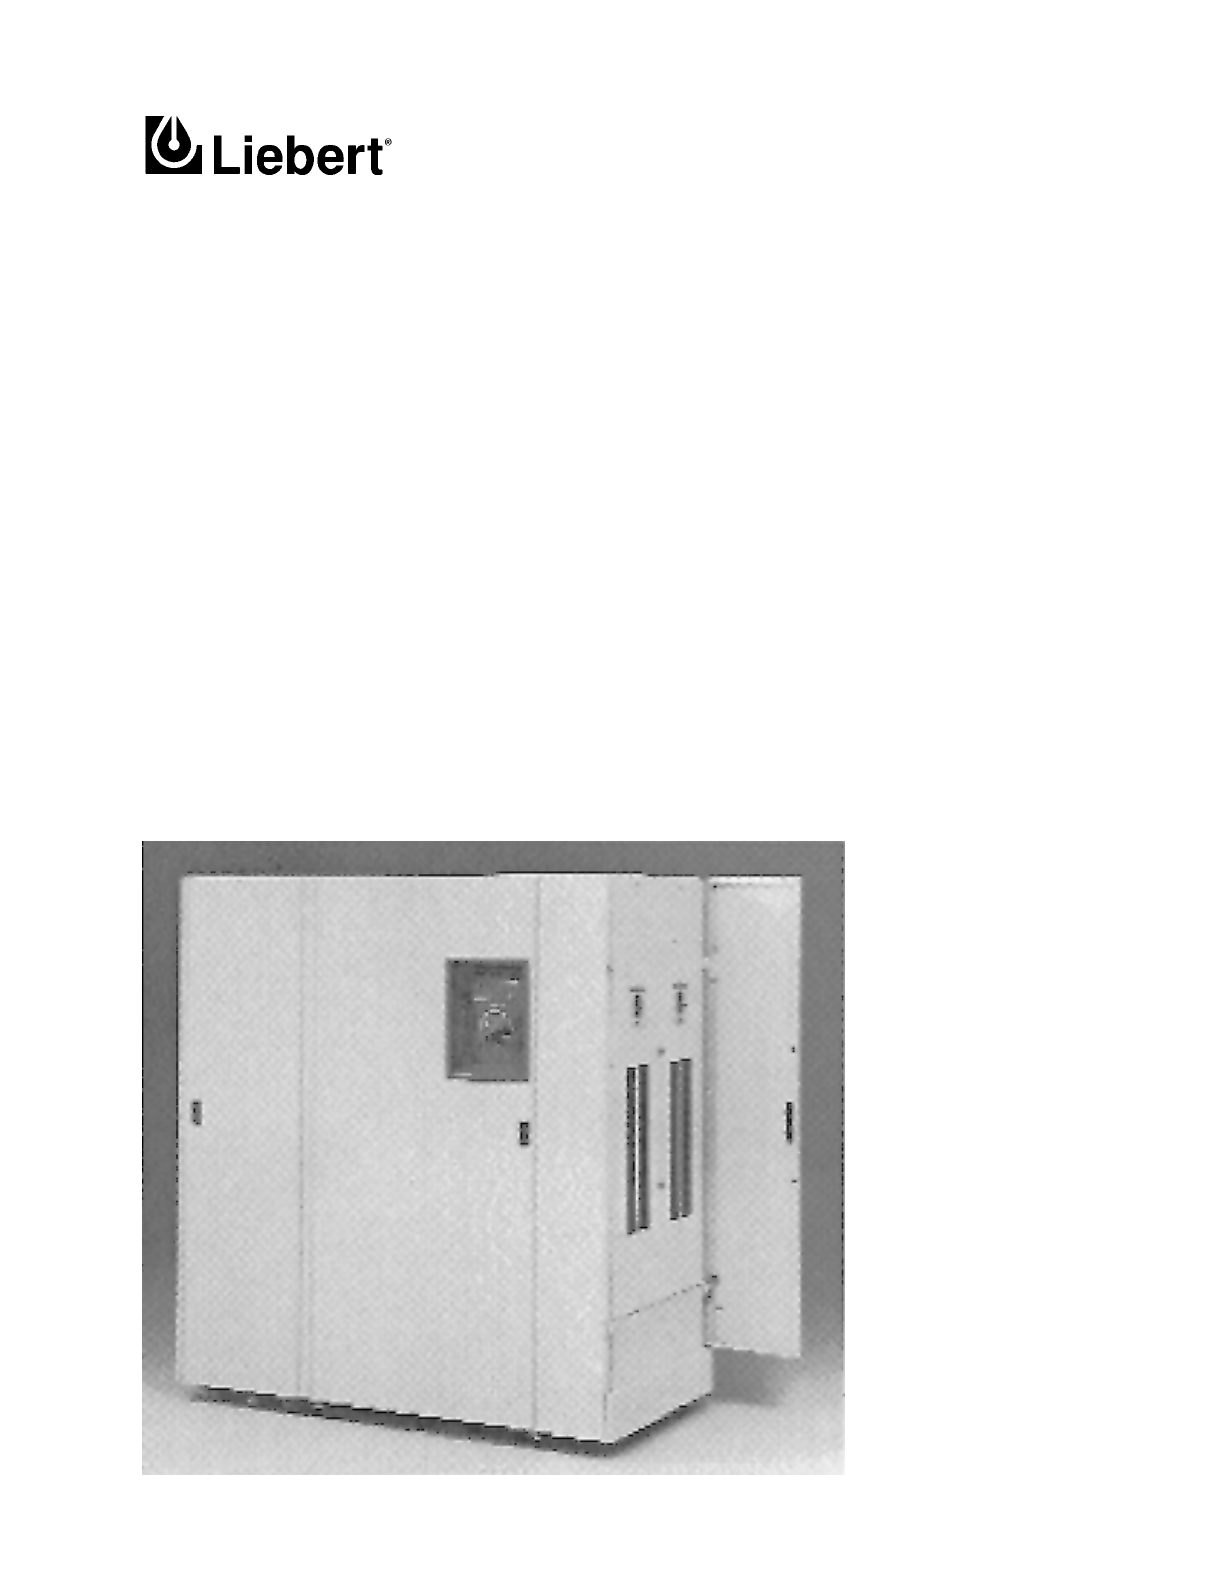 liebert nx 60 kva ups user manual